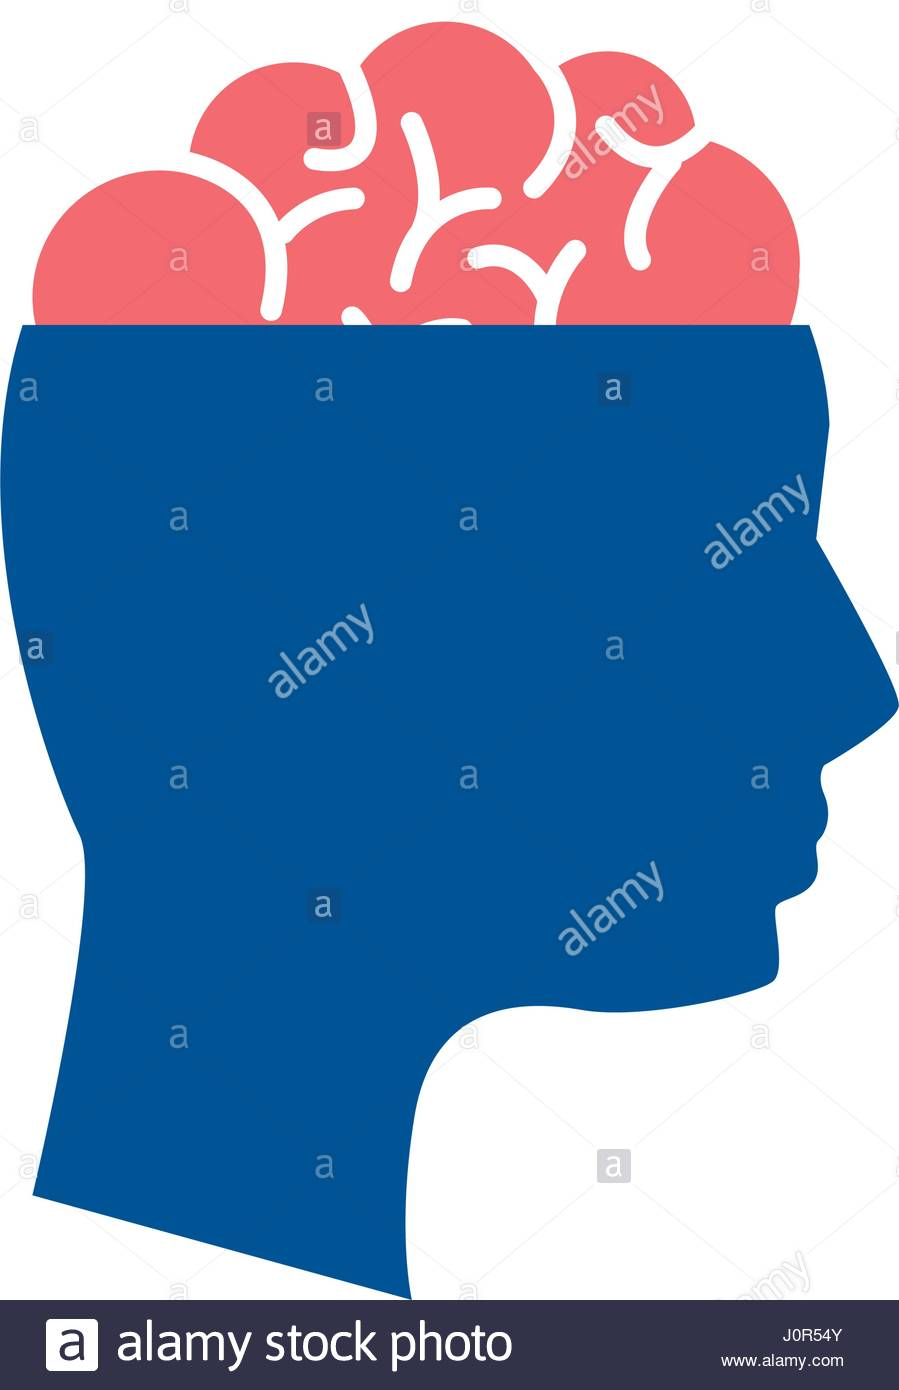 899x1390 Mental Health Silhouette Person With Brain Stock Vector Art